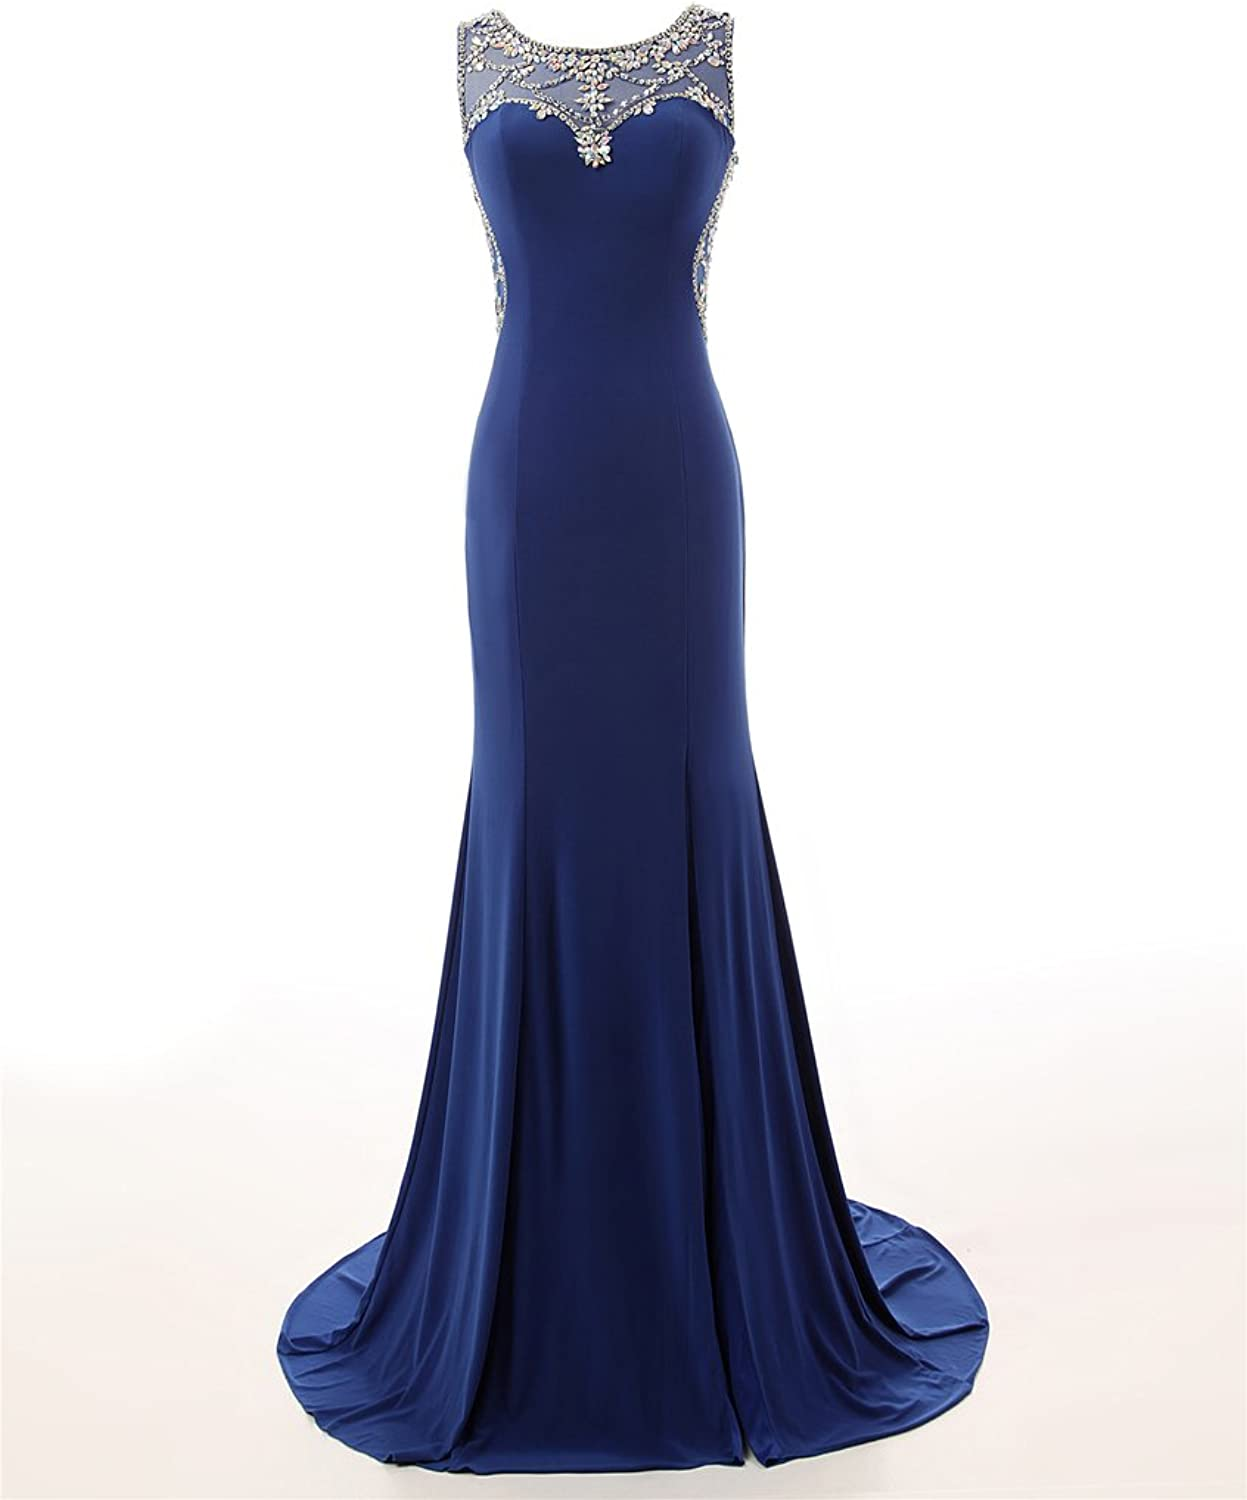 Changjie Women's Illusion Neckline Long Prom Dresses Formal Evening Gown CJ130